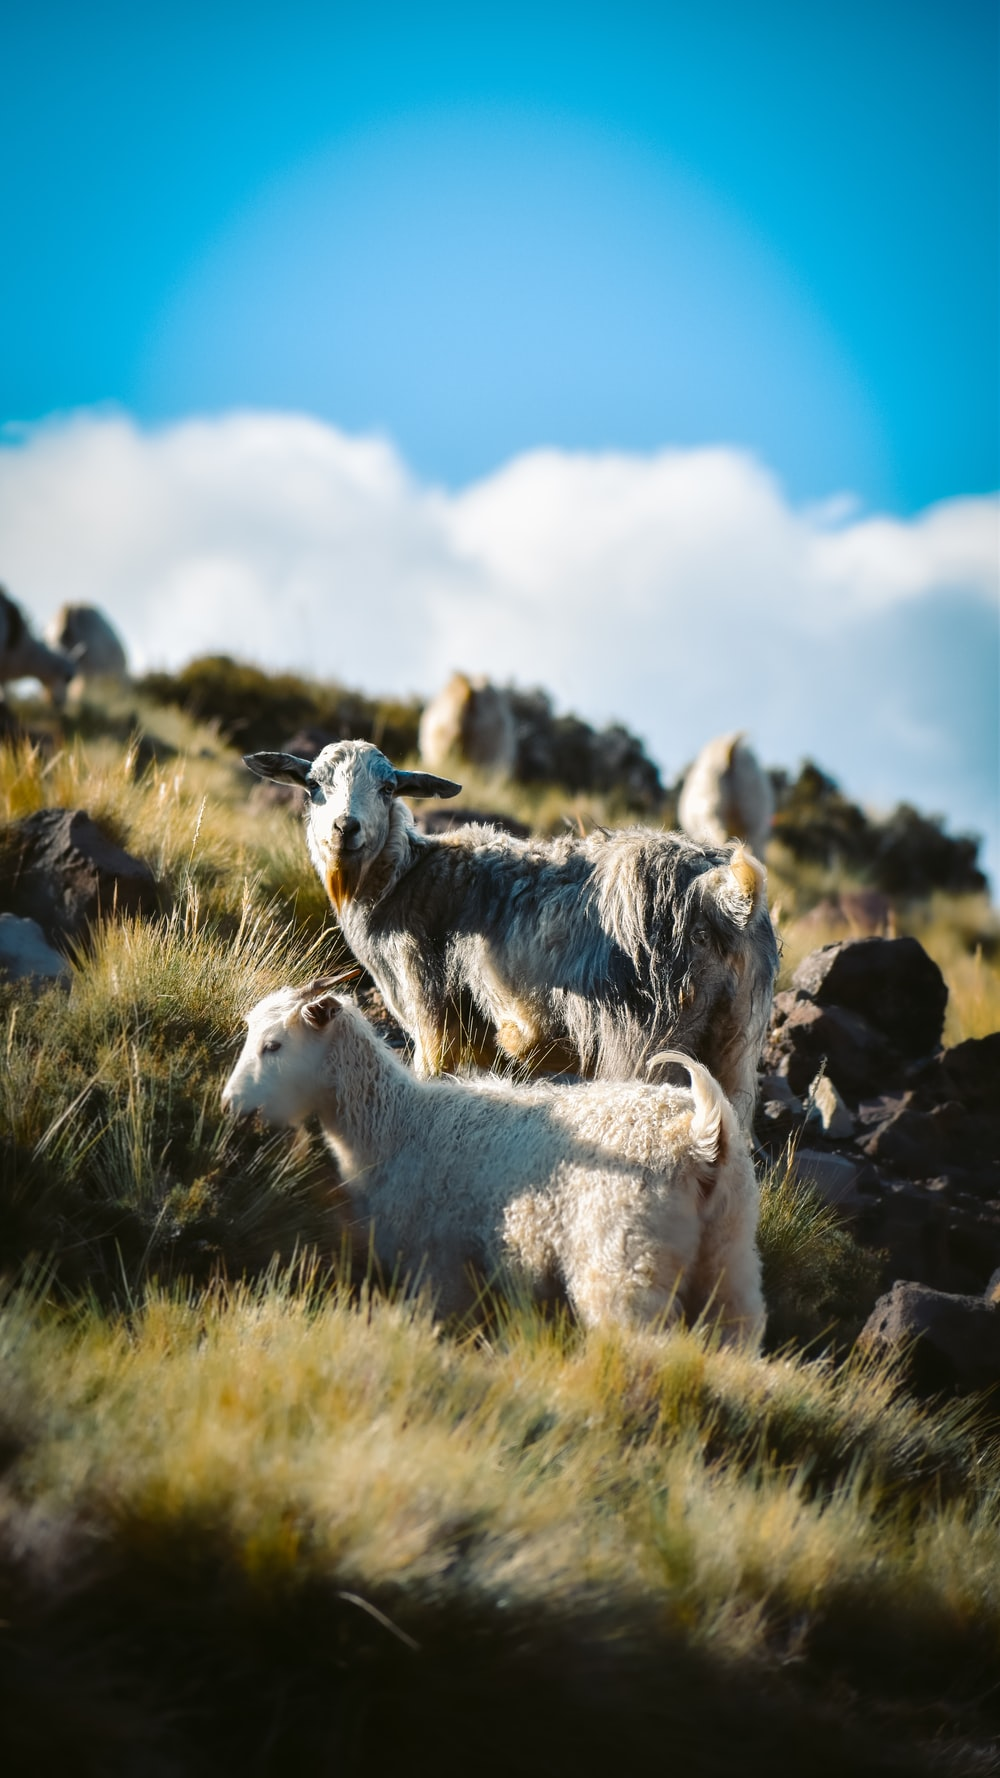 white and black goats on green grass field under blue sky during daytime